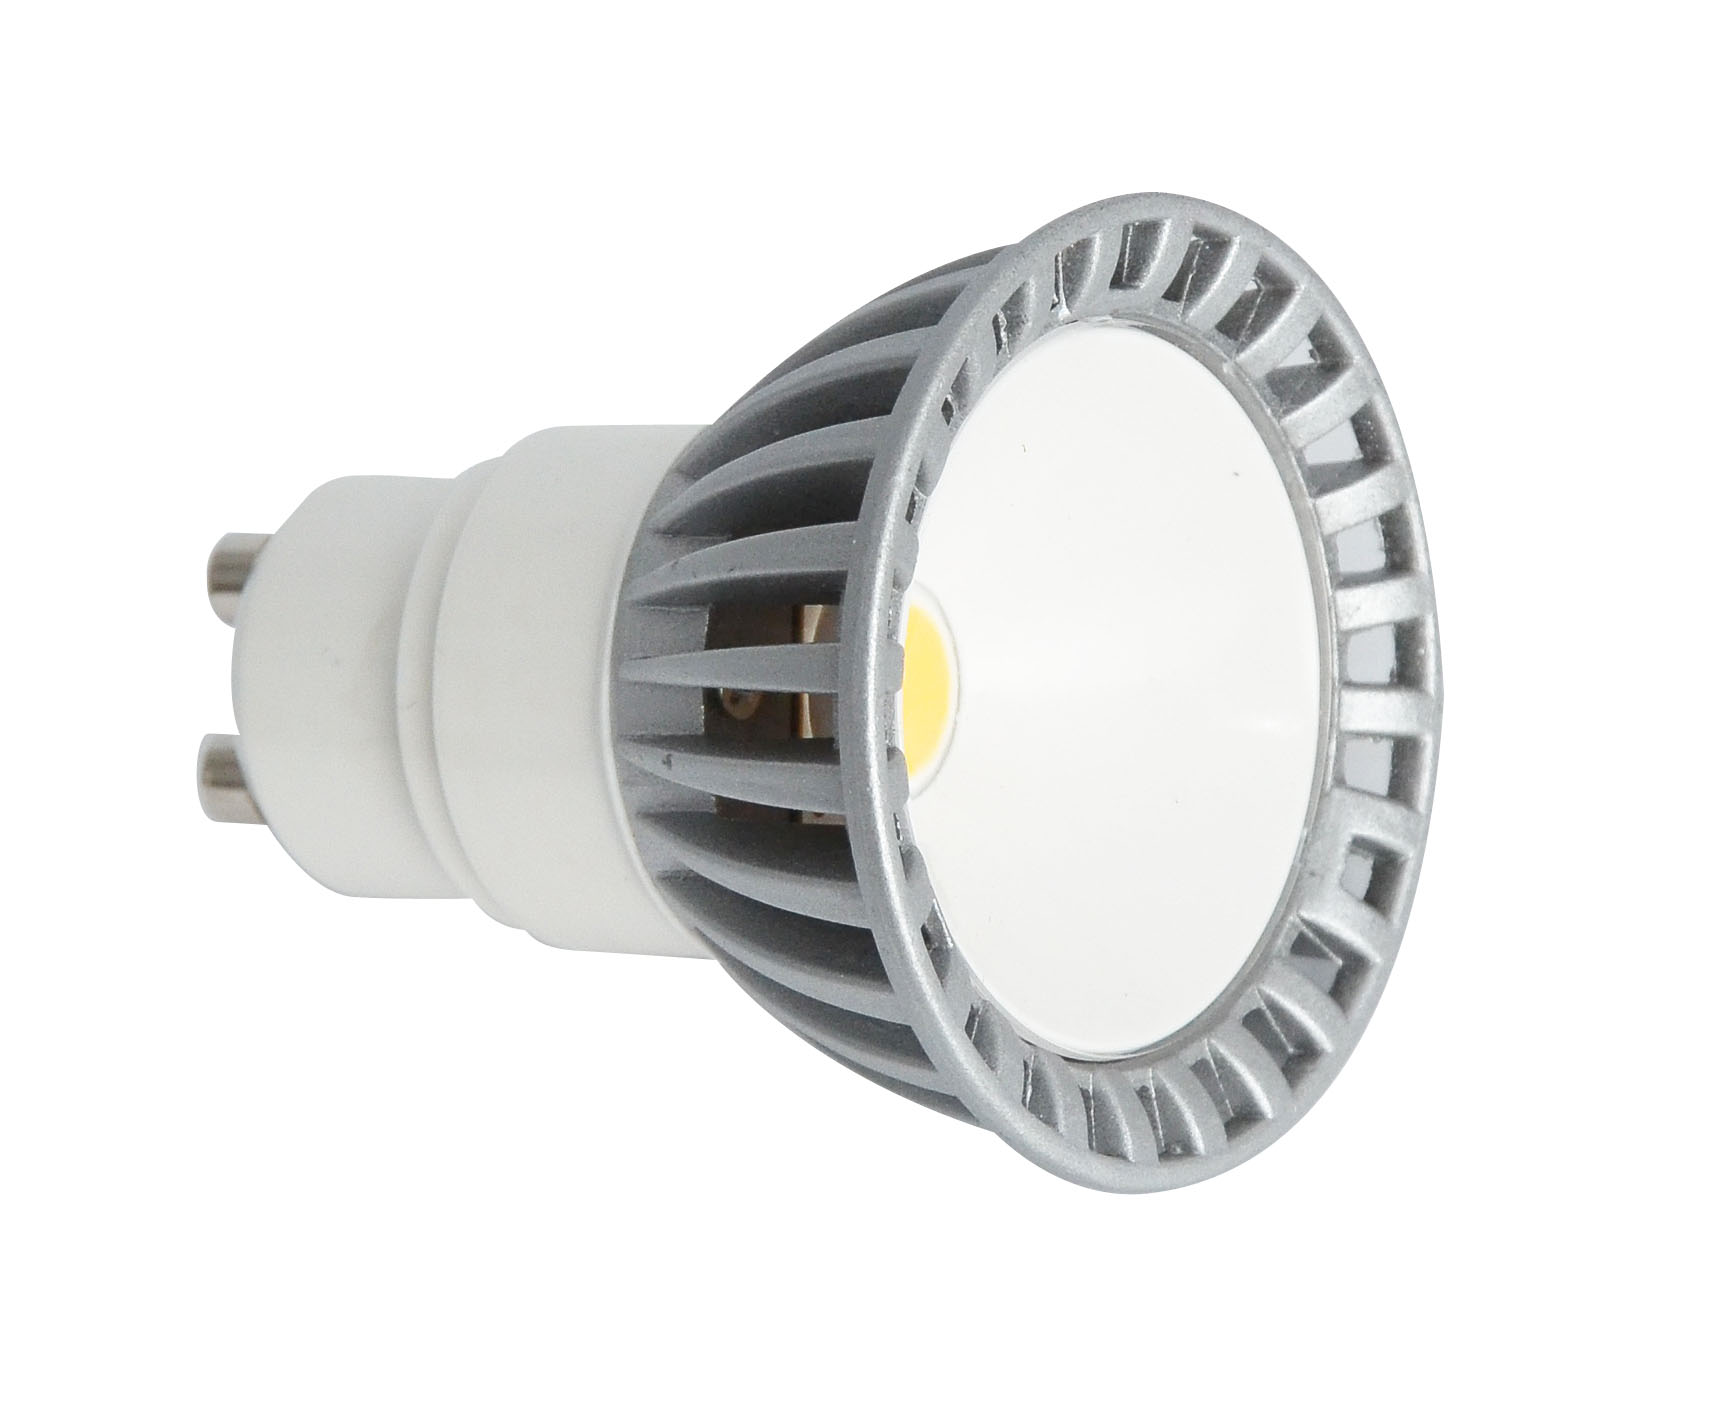 Led Leuchtmittel Gu10 Led Bulb Cob 5w Gu10 Mega Power